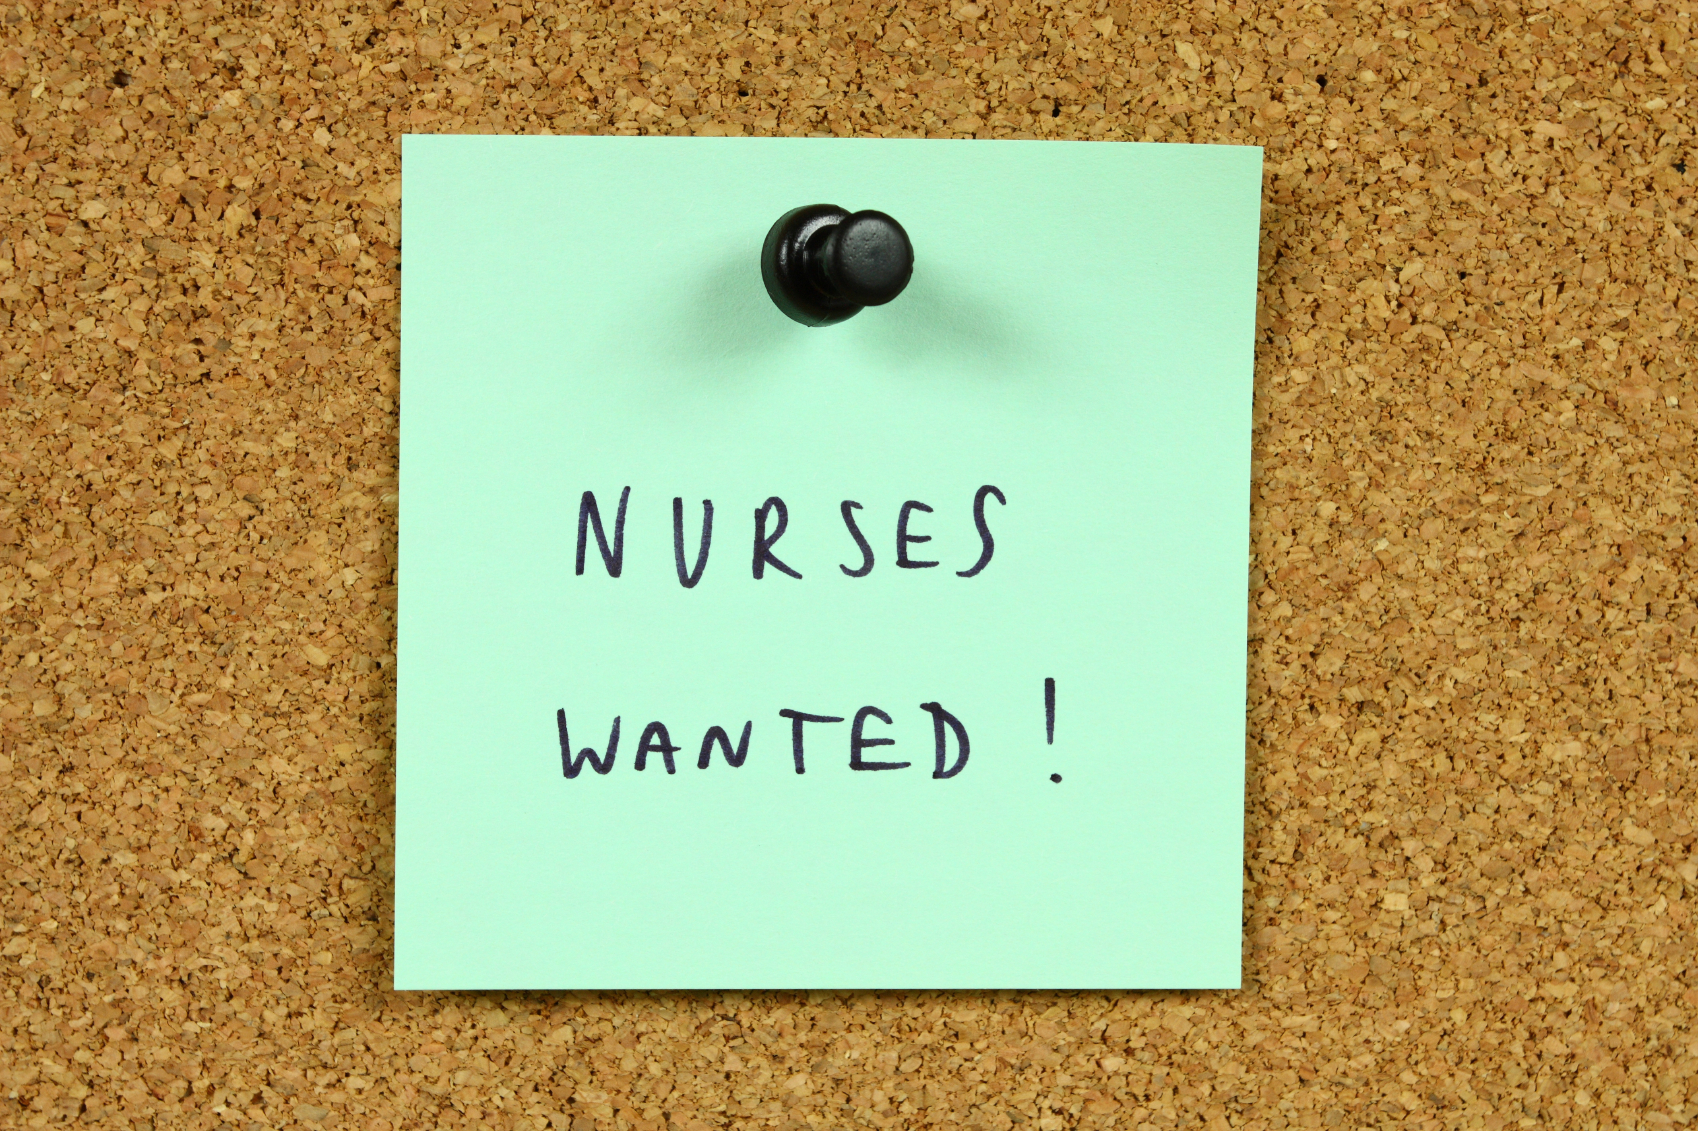 Nurses wanted